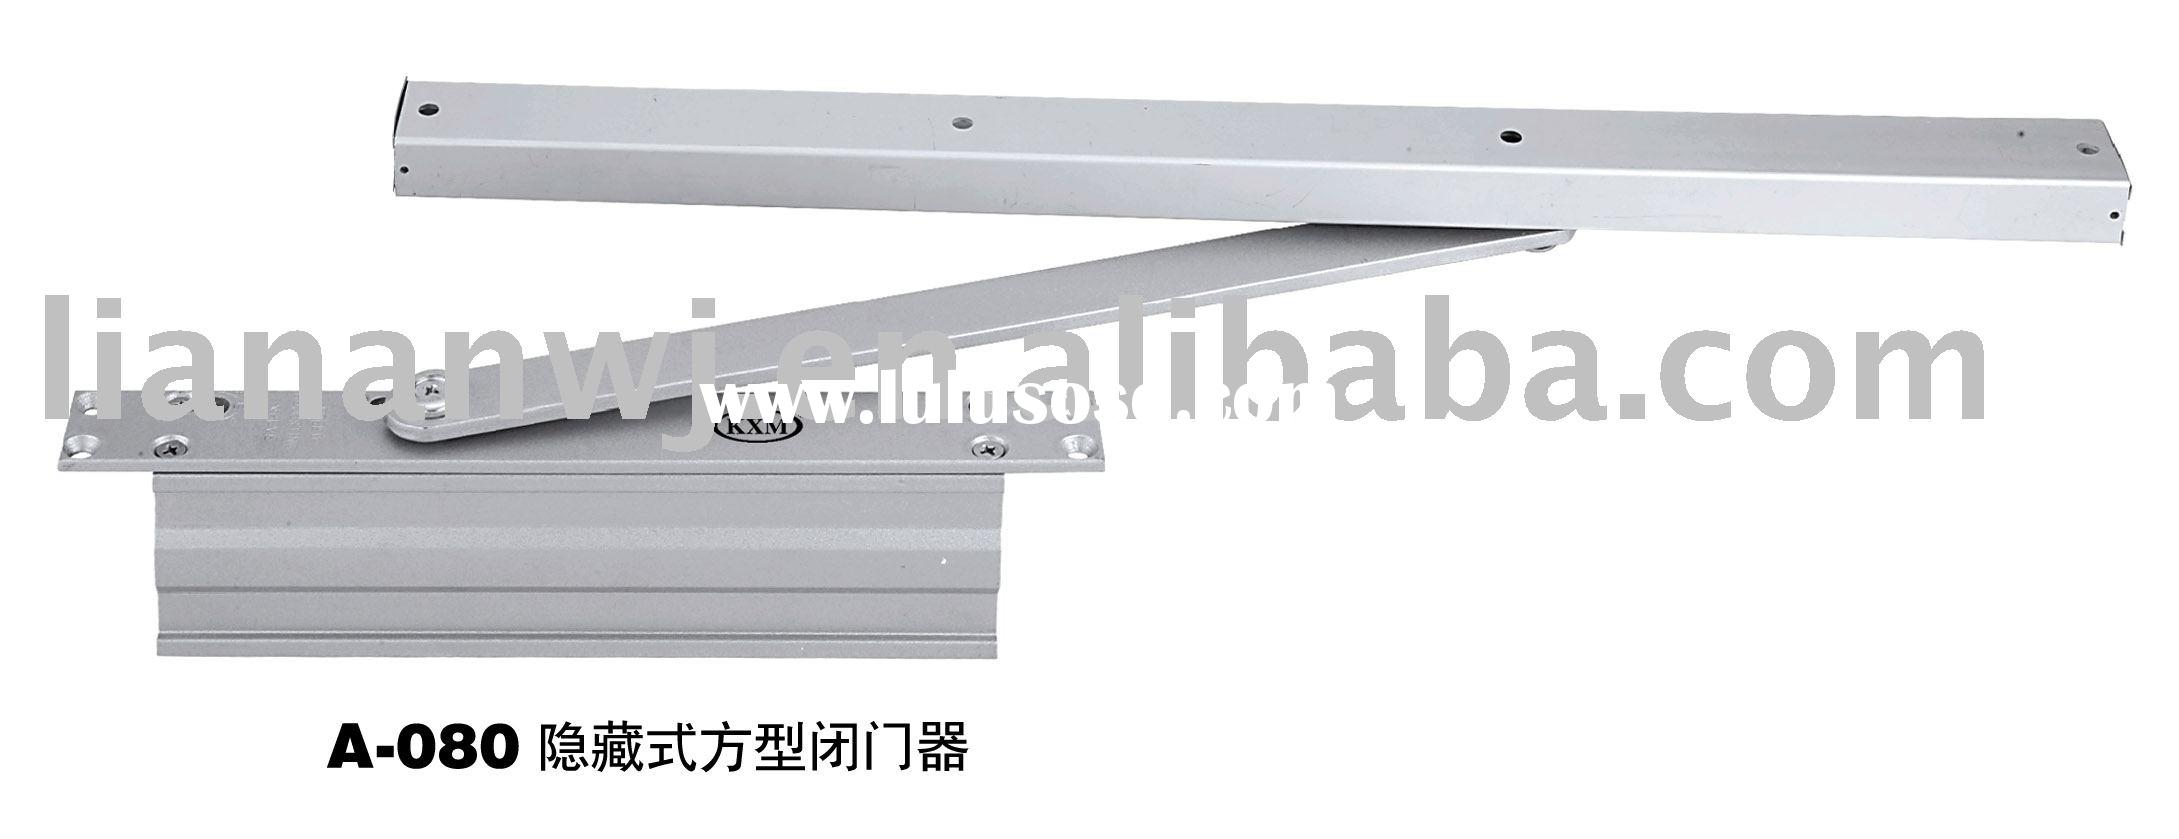 Hinge Door Closer For Sale Price China Manufacturer